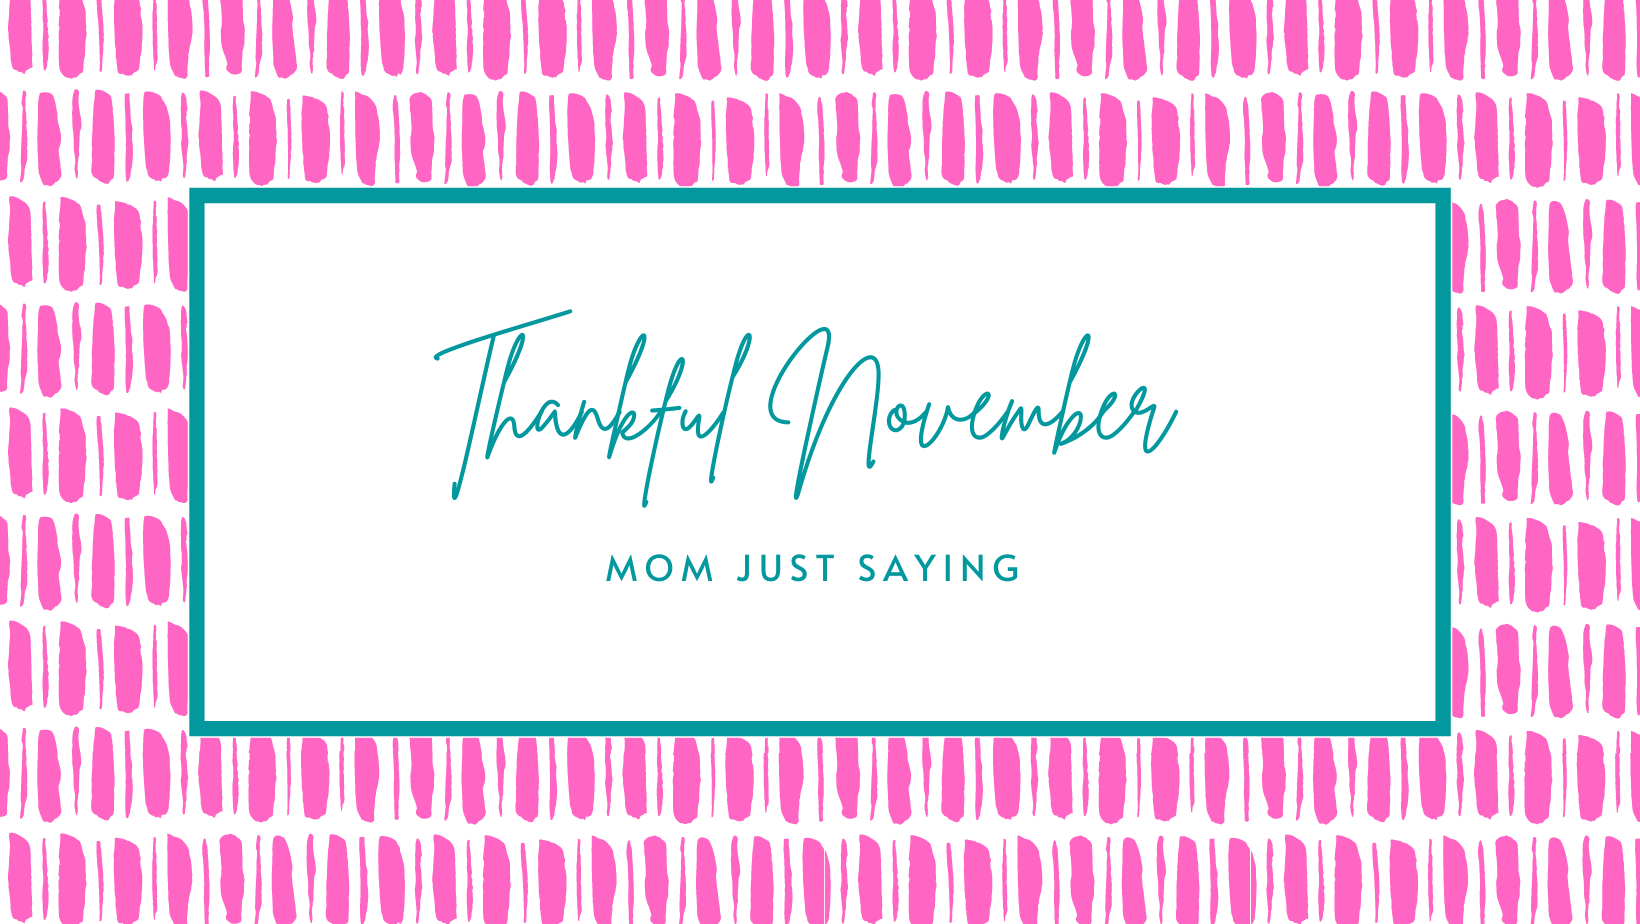 Thankful November Mom Just Saying